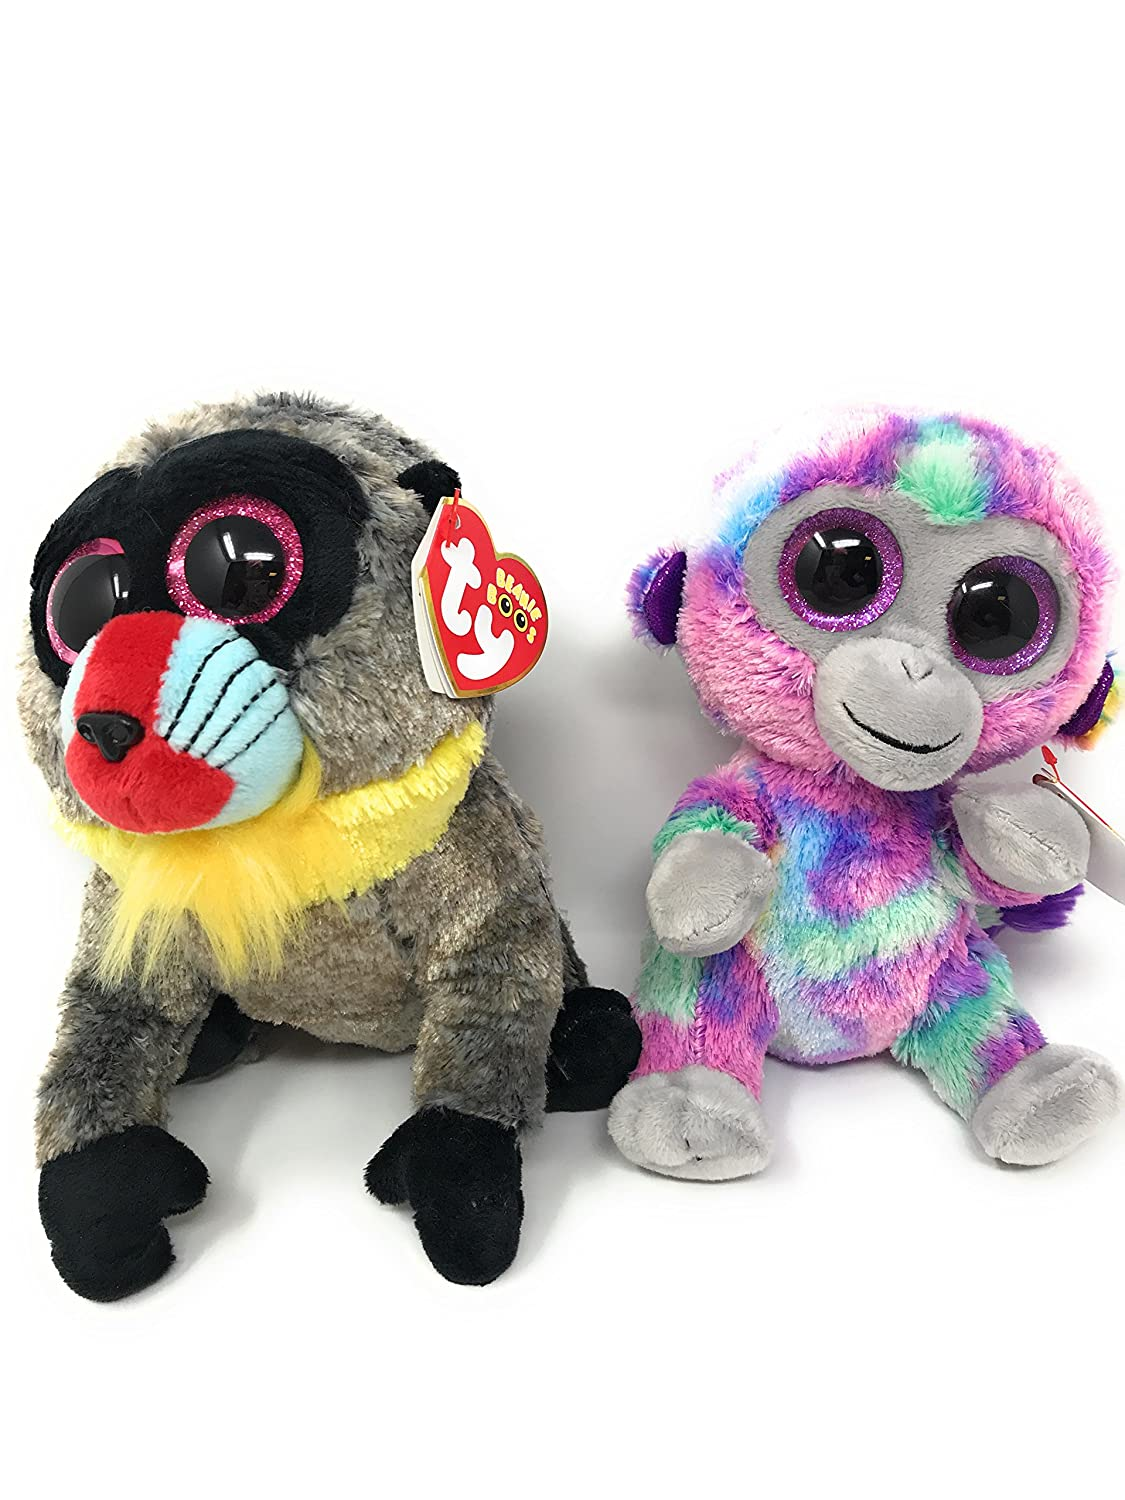 ffd4b2a2a6d Amazon.com  TY beanie boos set of 2 Wasabi the baboon and Zuri the monkey   Toys   Games